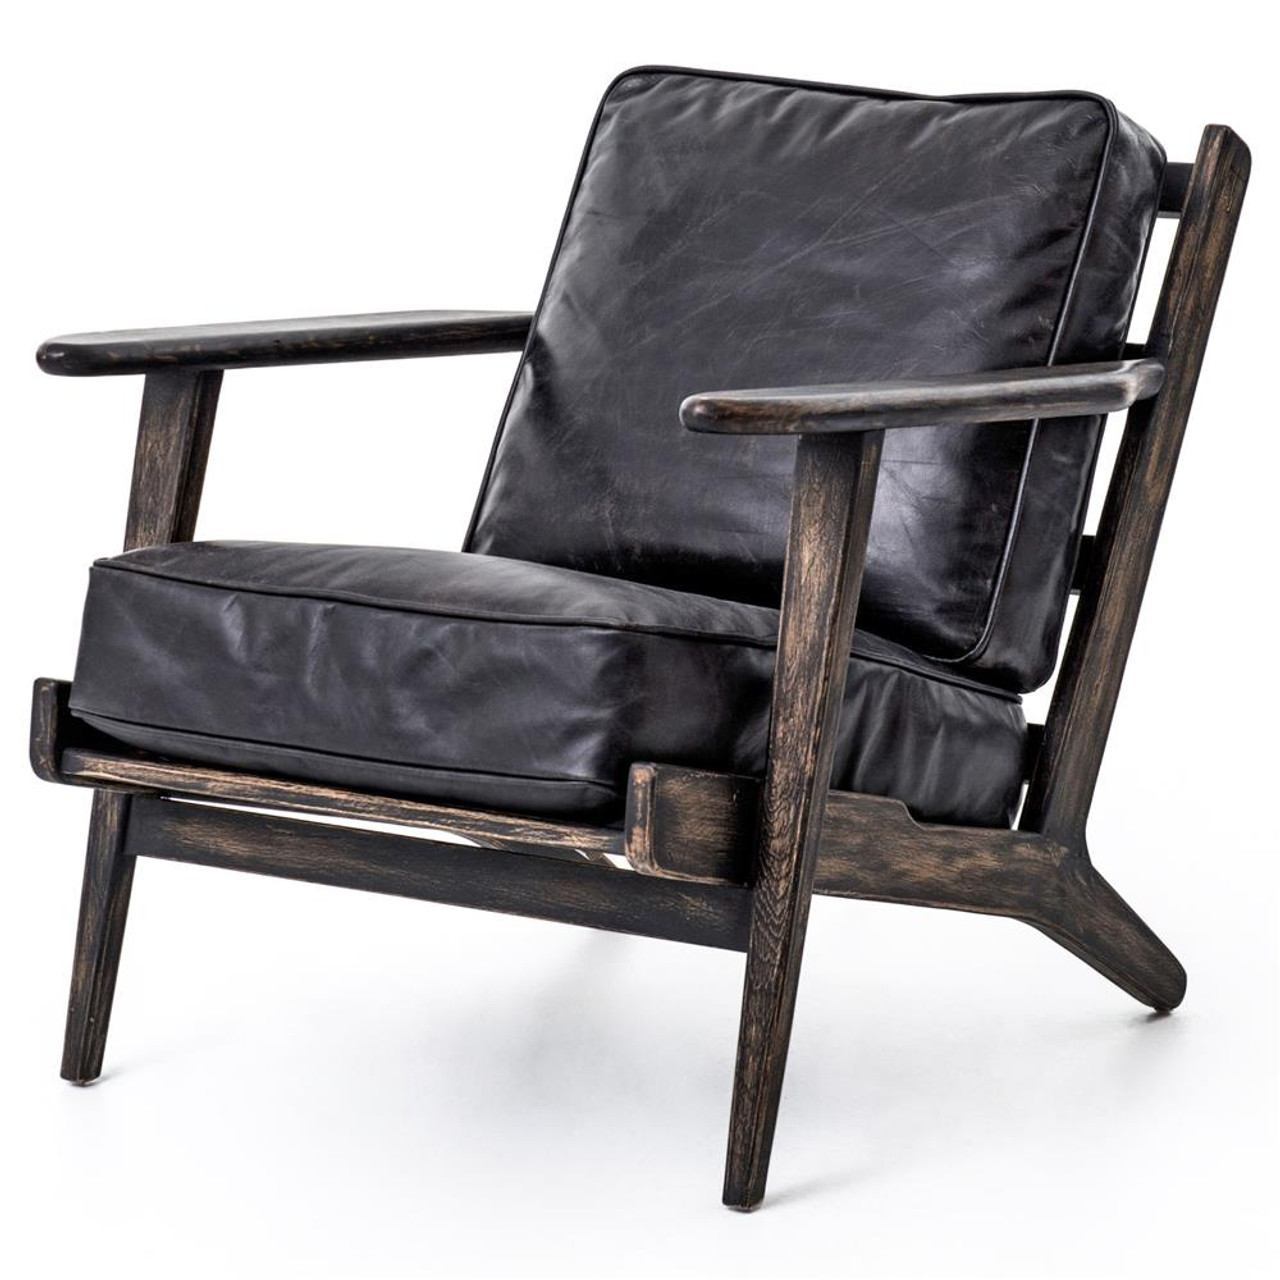 Mid century modern brooks leather lounge chair